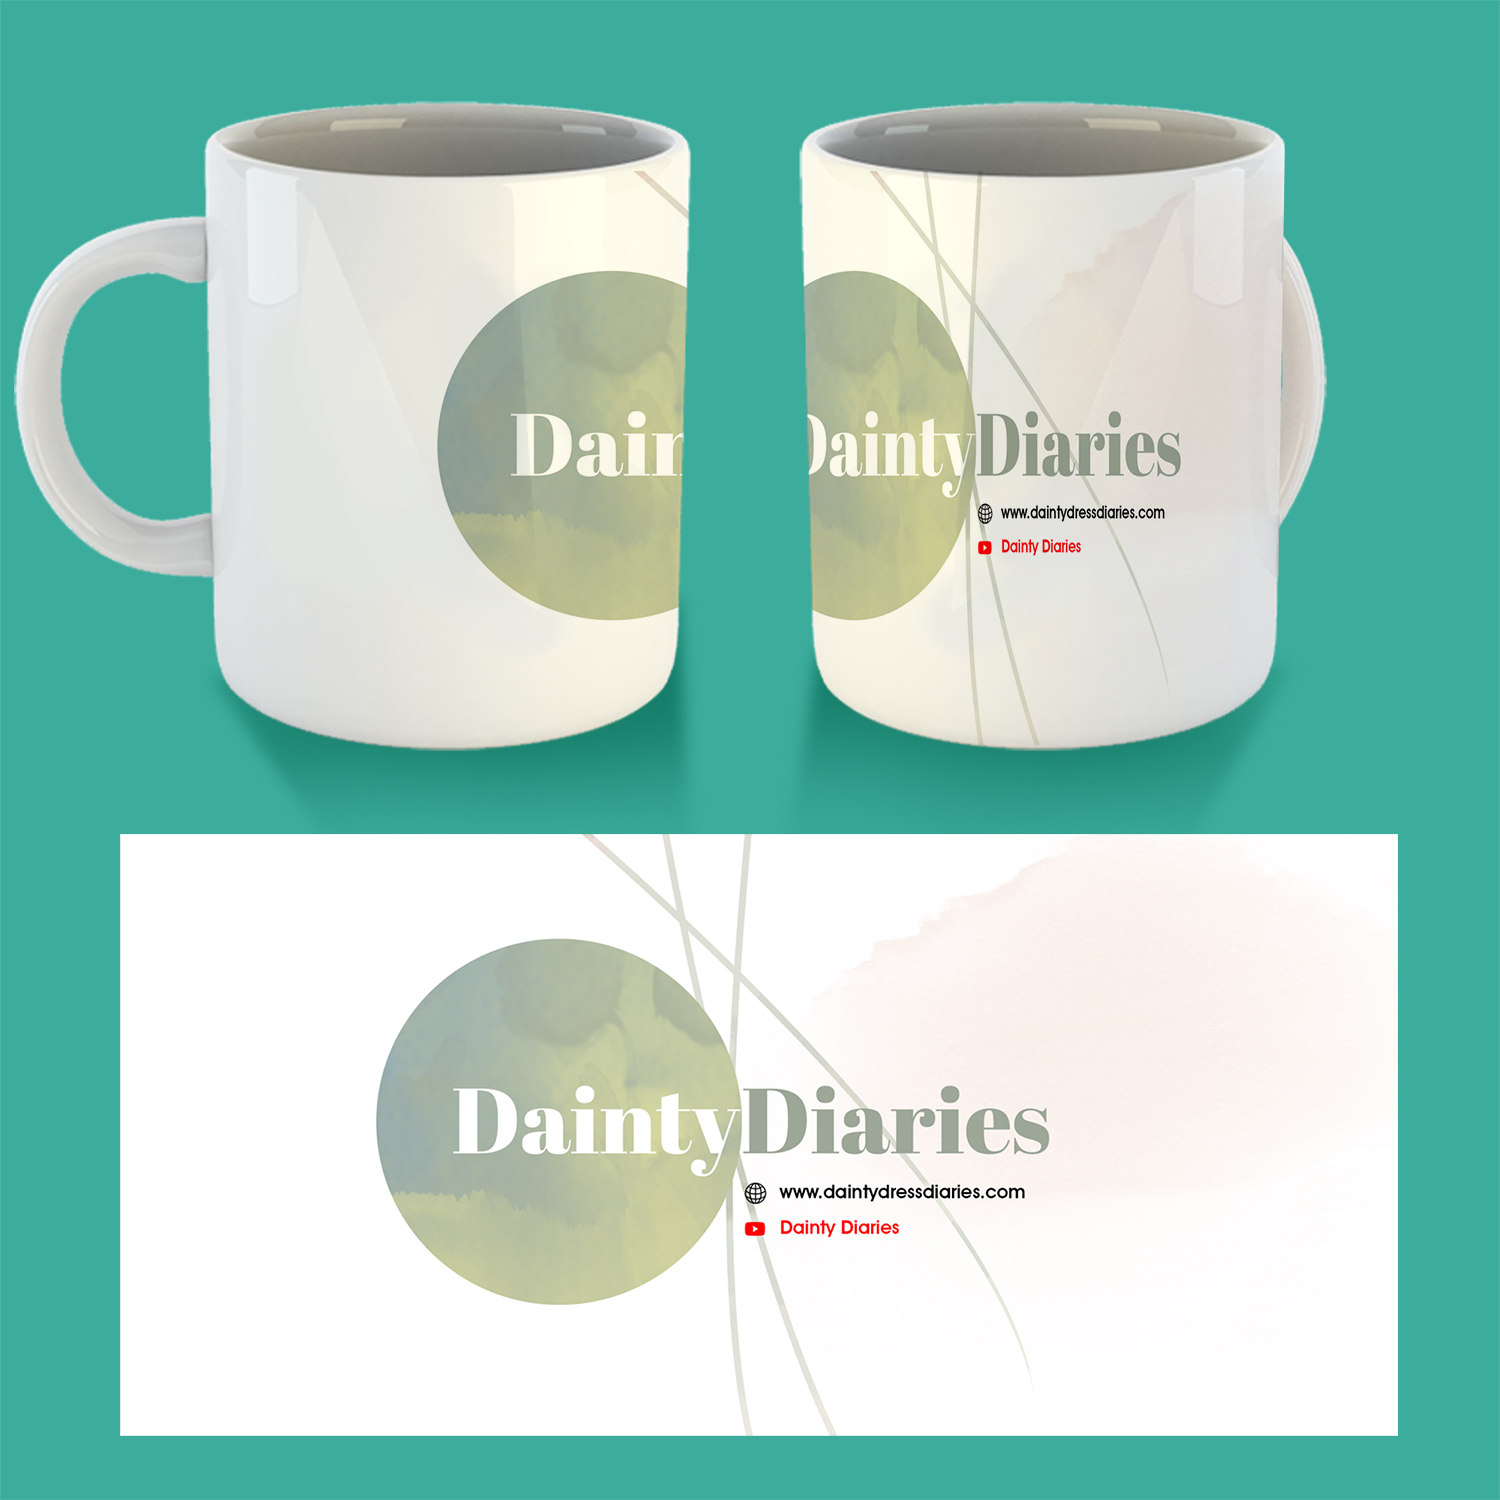 Playful Feminine Youtube Channel Cup And Mug Design For A Company By Uprinteez Design 23692127